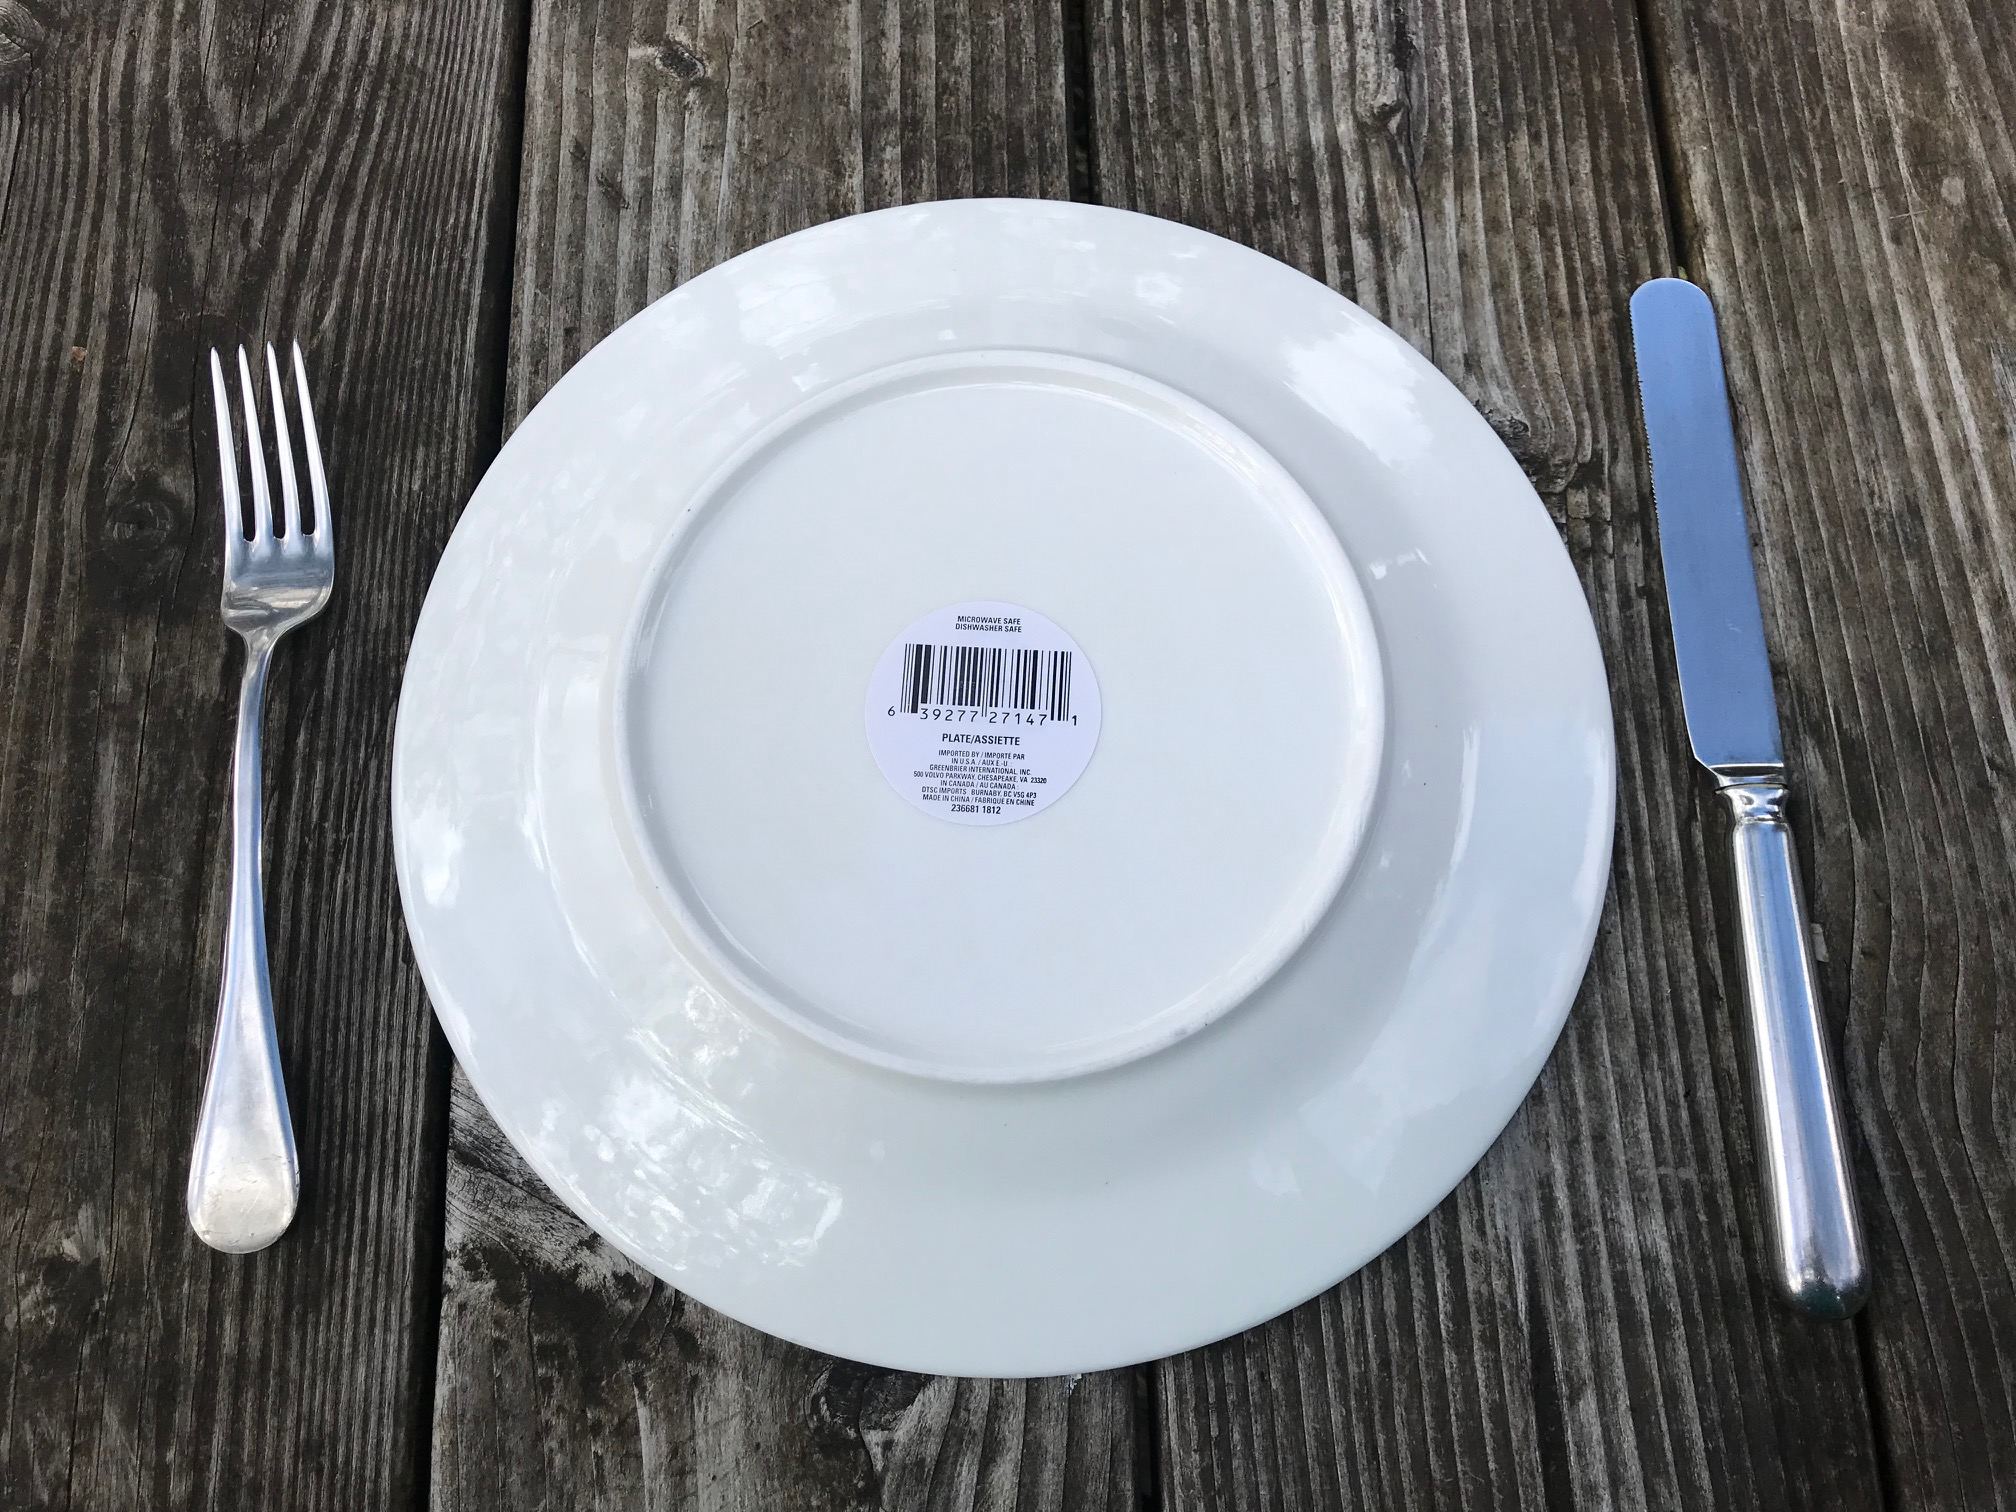 Spring 2019 Dollar Tree Store Royal Norfolk Paisley Print Dinner Plates: 60 ppm Lead + 38 ppm Cadmium (safe by all standards!)